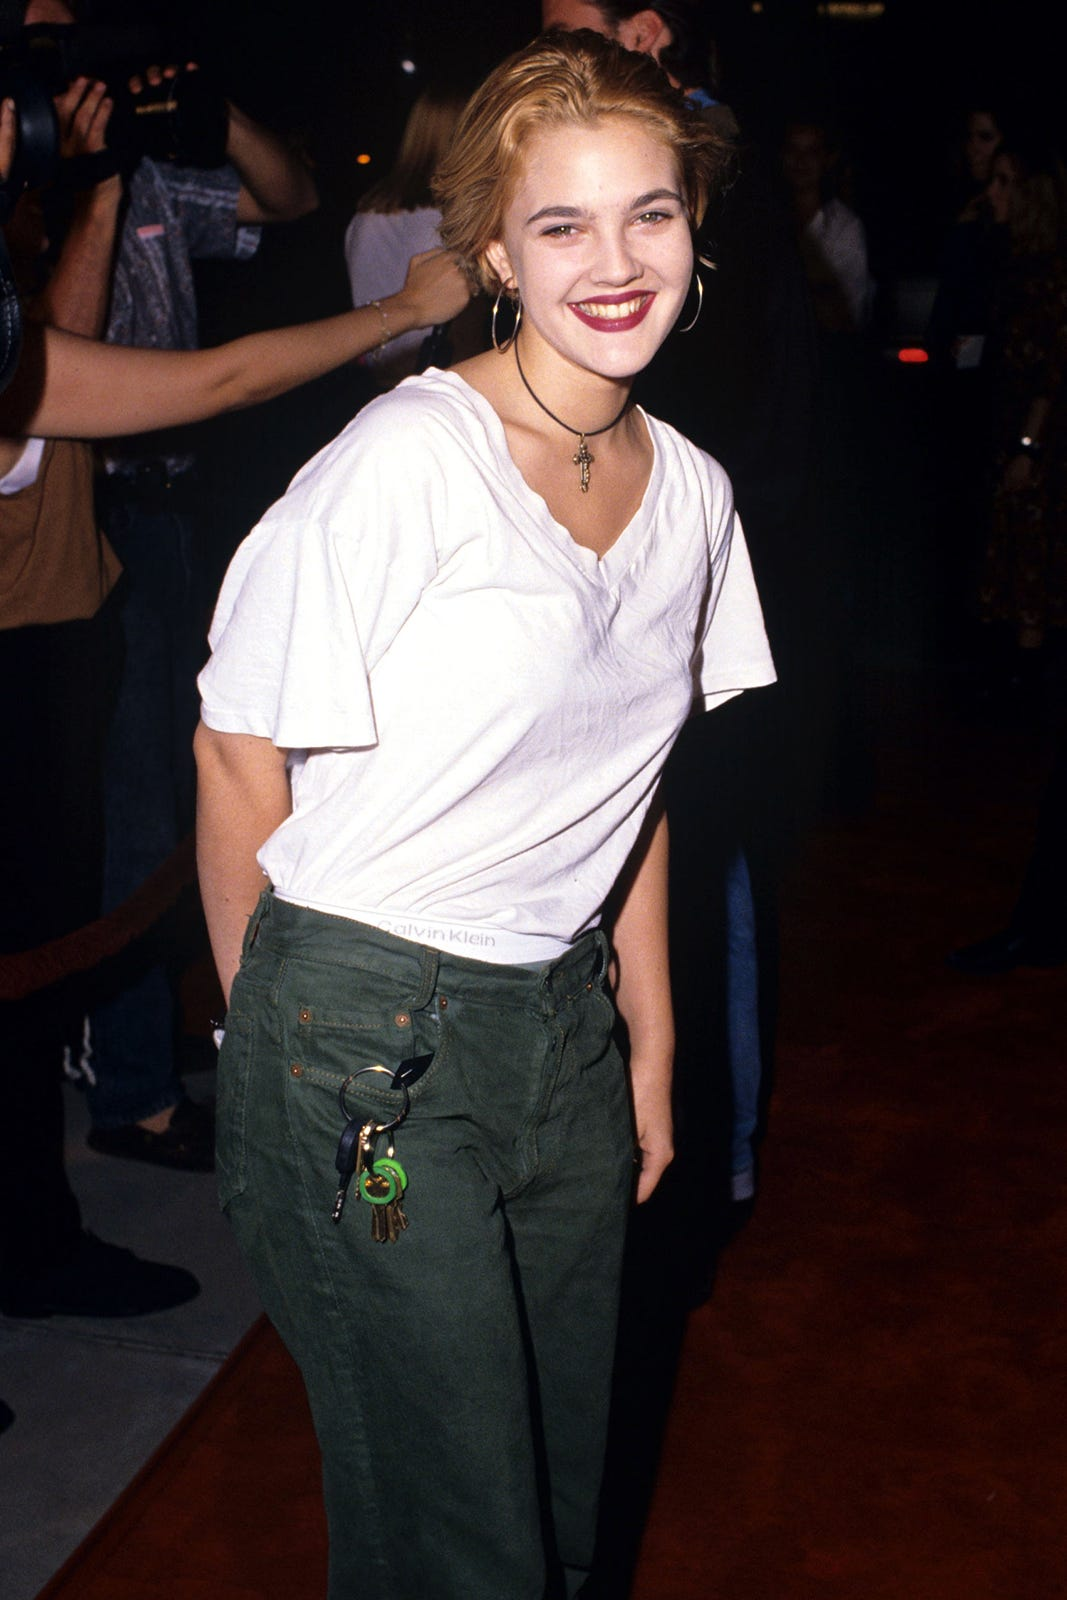 Drew Barrymore Lookbook Throwback 90s Fashion